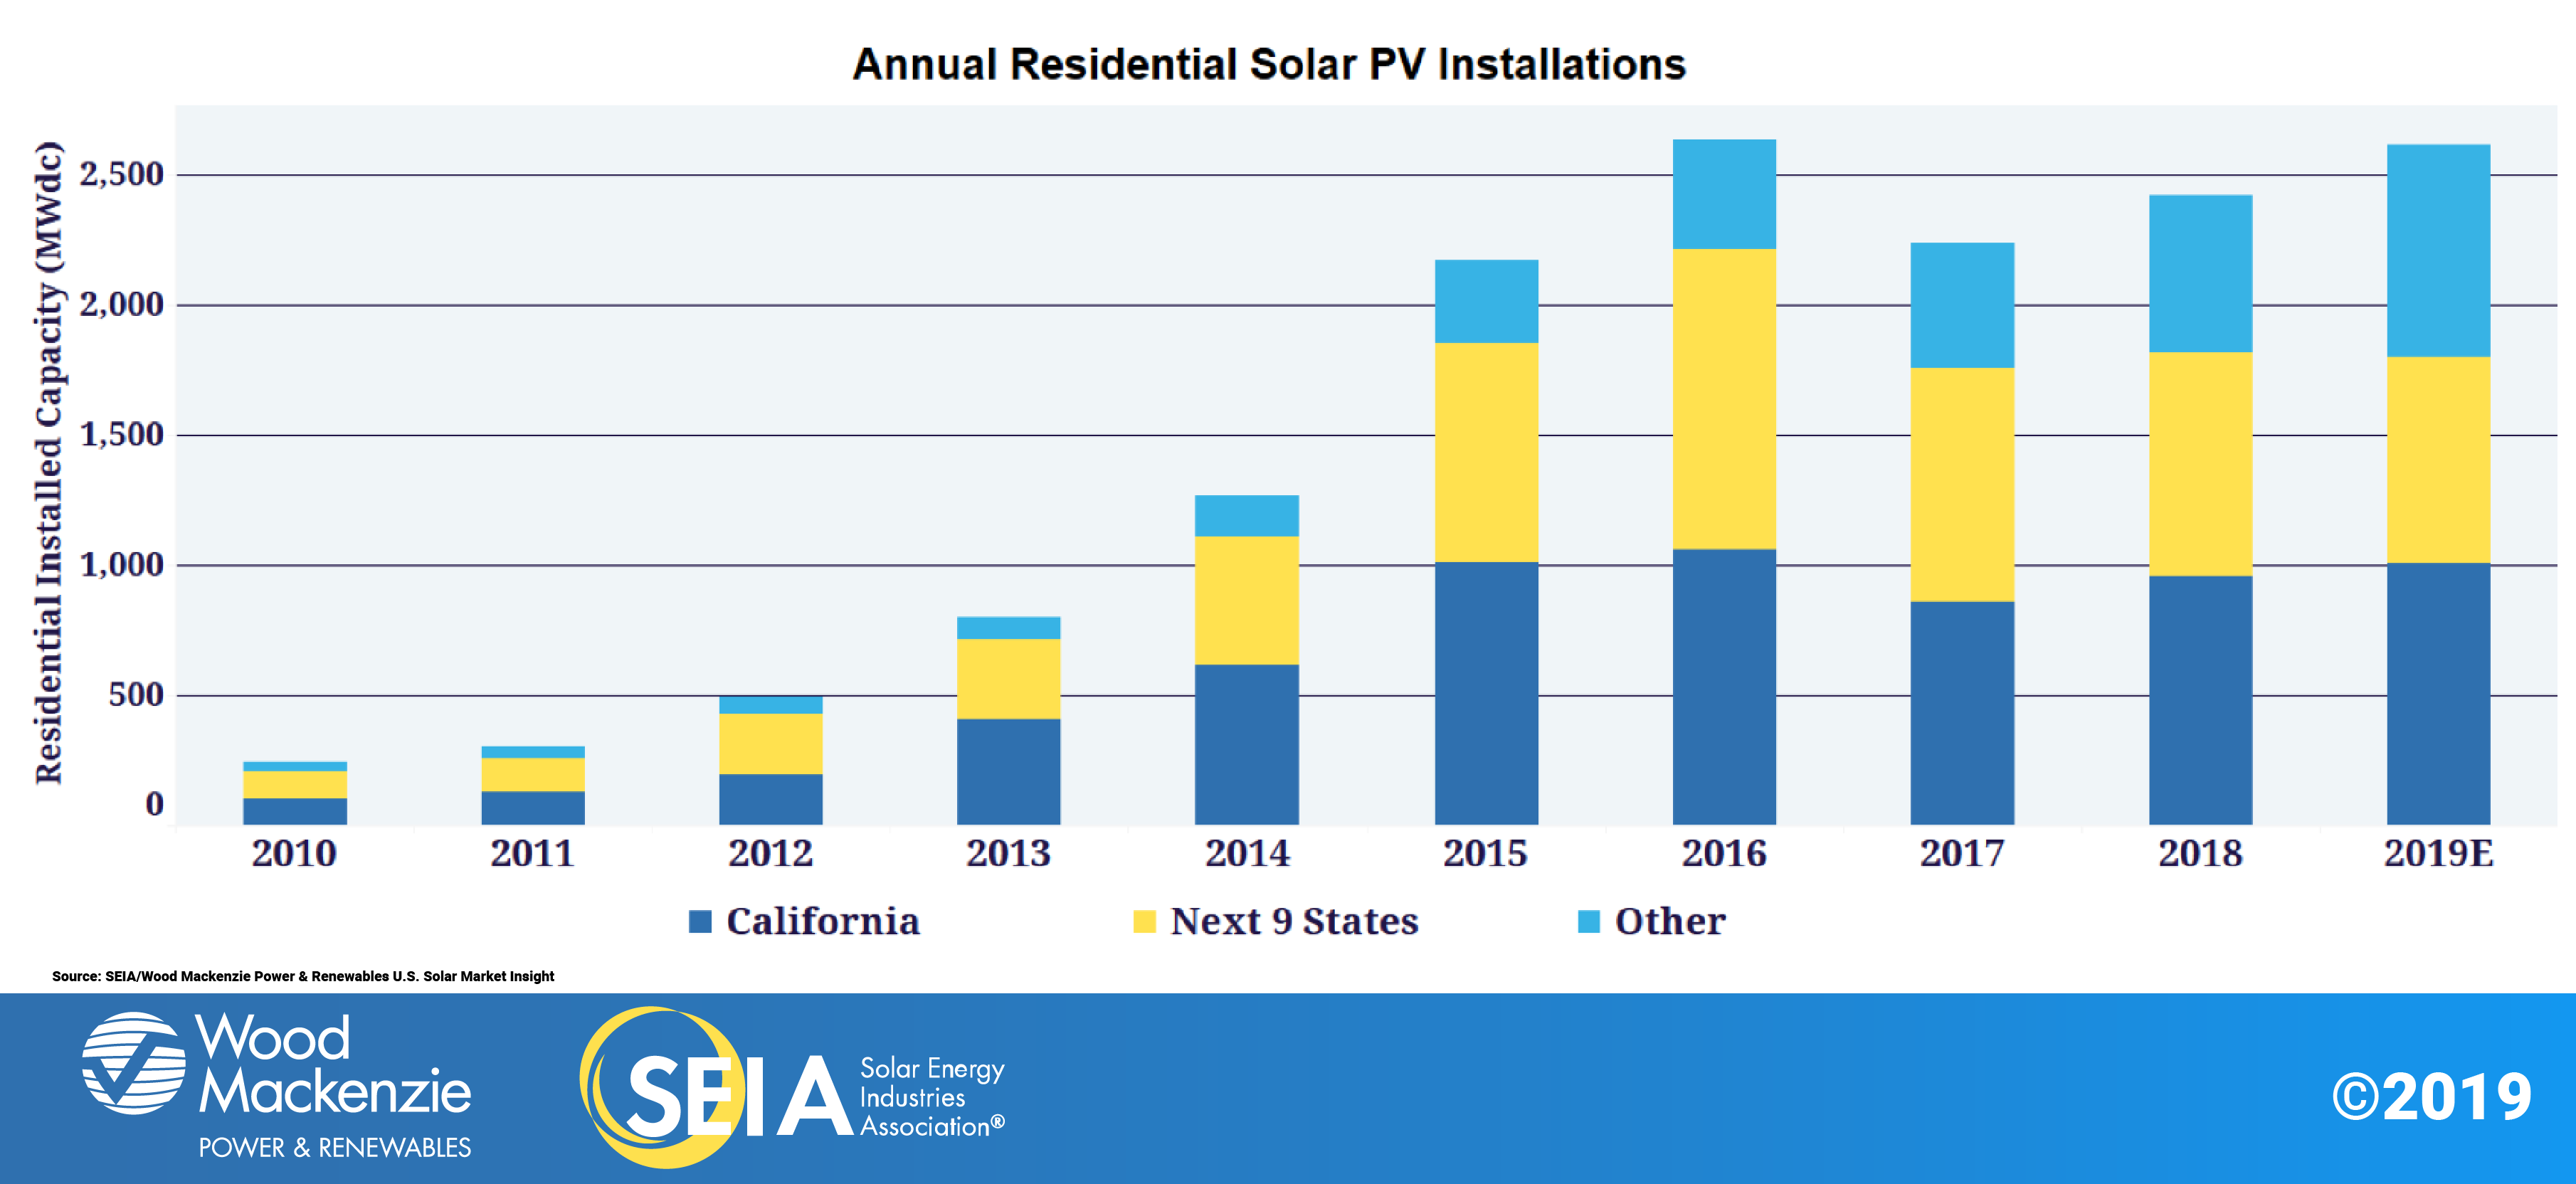 In Less than 10 years, U.S. residential homes have increased solar panel installations from 500 Mega Watts to 2500 Mega Watts per year.